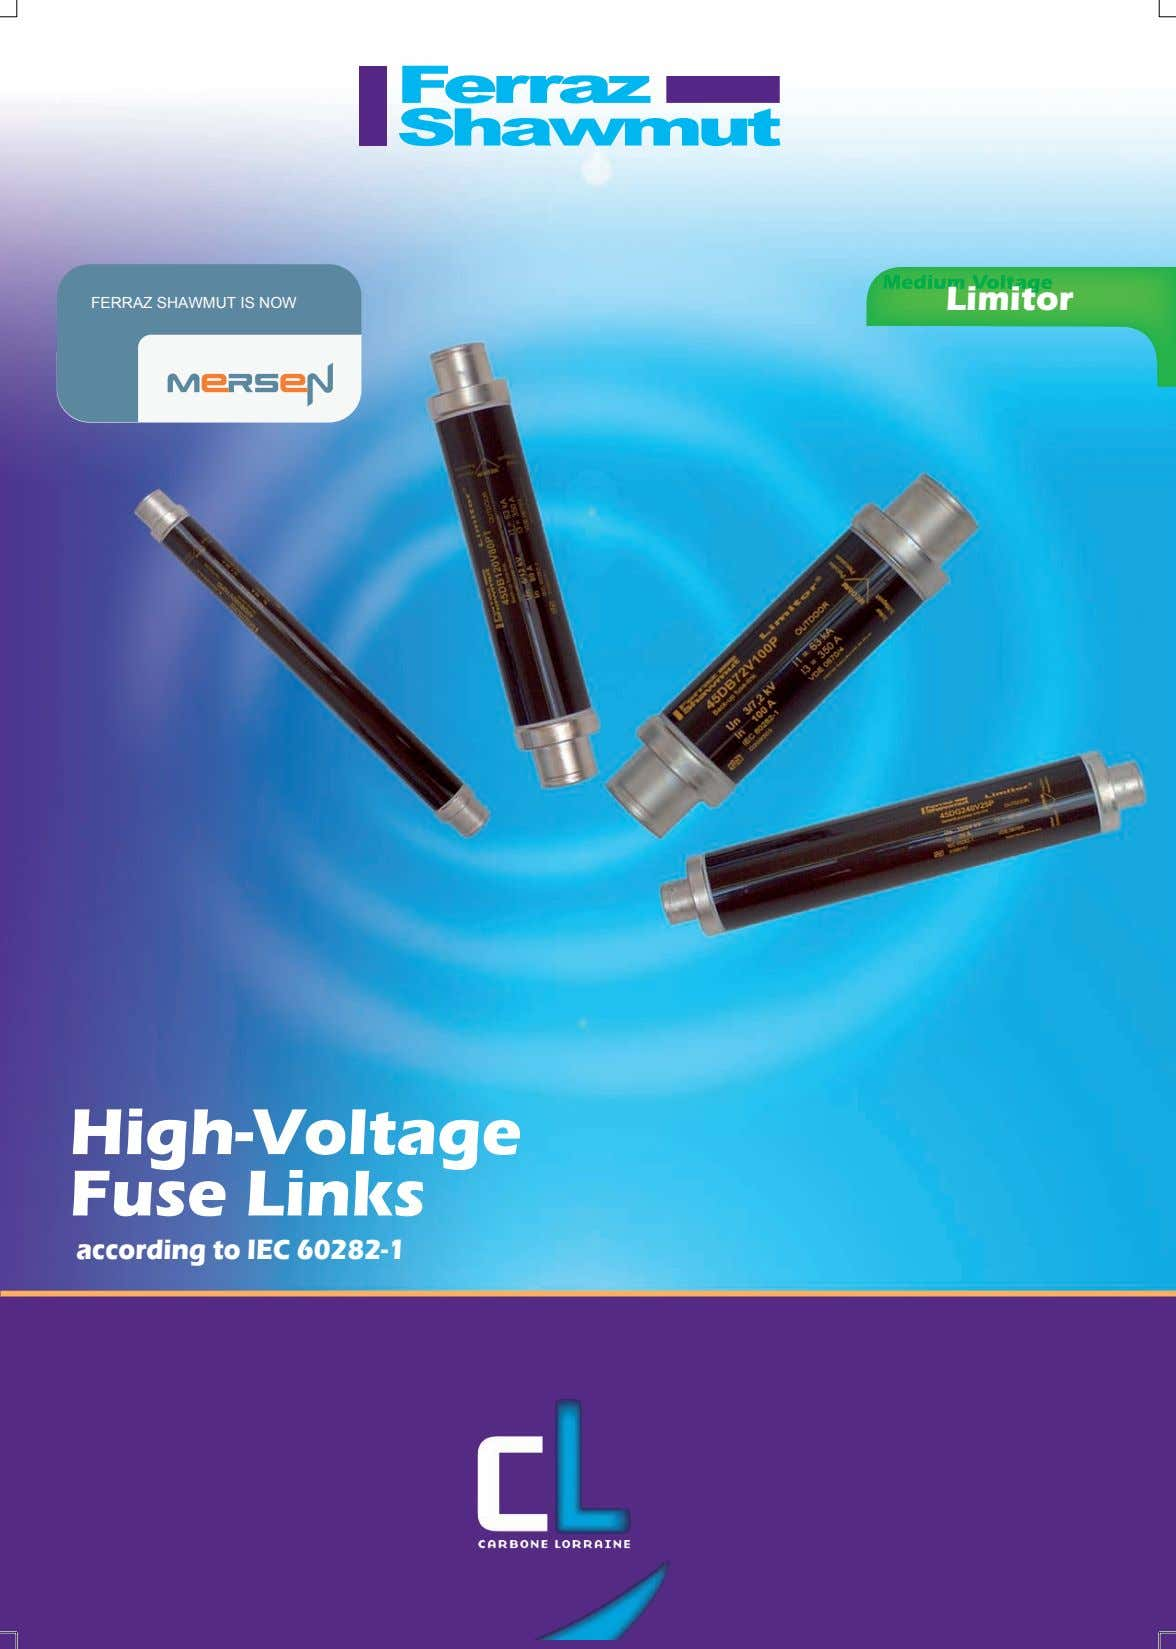 Limitor FERRAZ SHAWMUT IS NOW High-Voltage Fuse Links according to IEC 60282-1